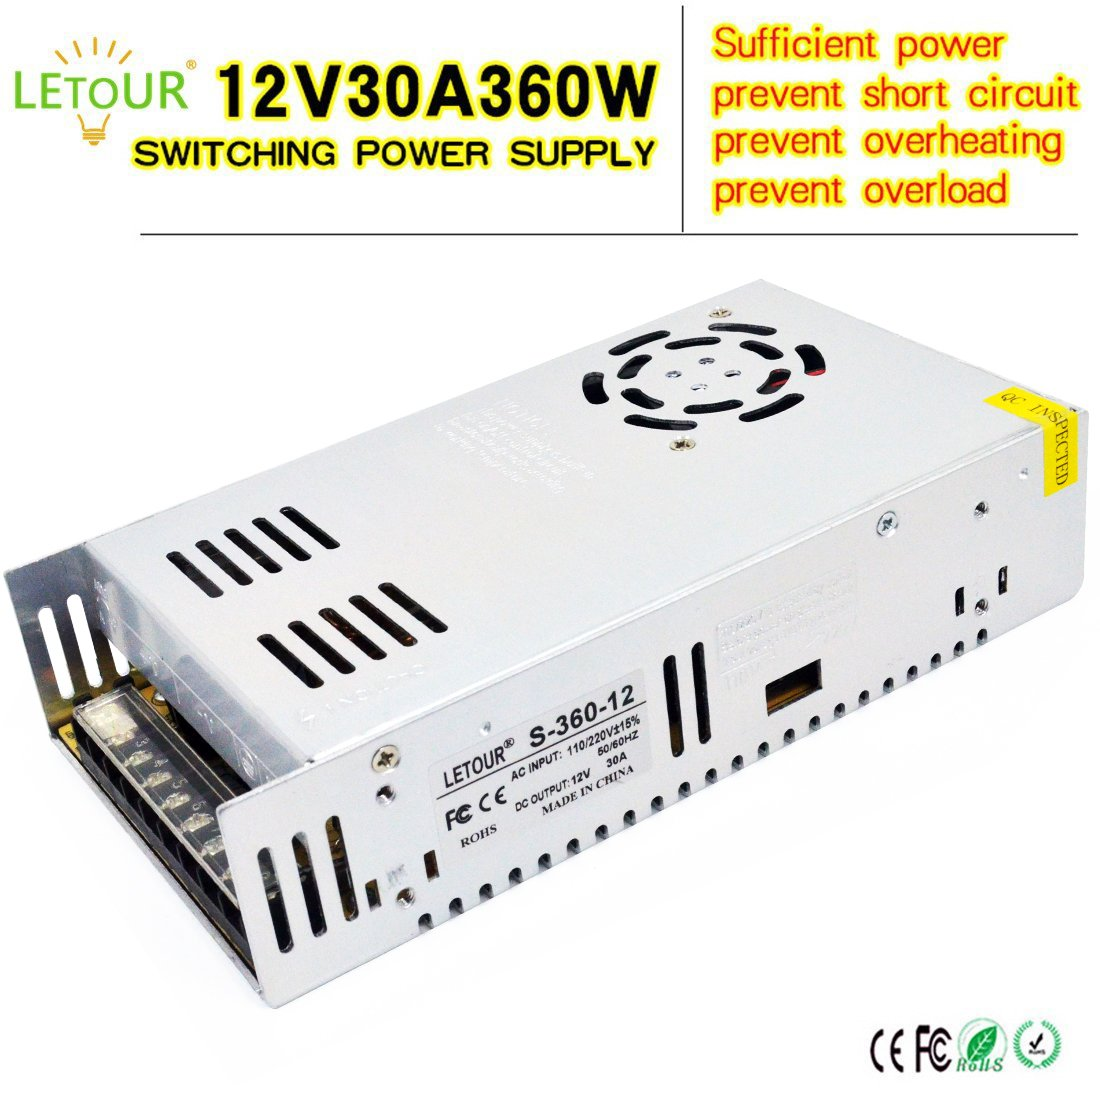 Electronic Project Circuit Dc Ac Voltage Inverter 12v For 110 500w Mosfet Power From To 110v 220v Amazoncom Letour 30a Supply 360w Converter 12volt 30amp 360watt Adapter Led Lightingled Stripcctv